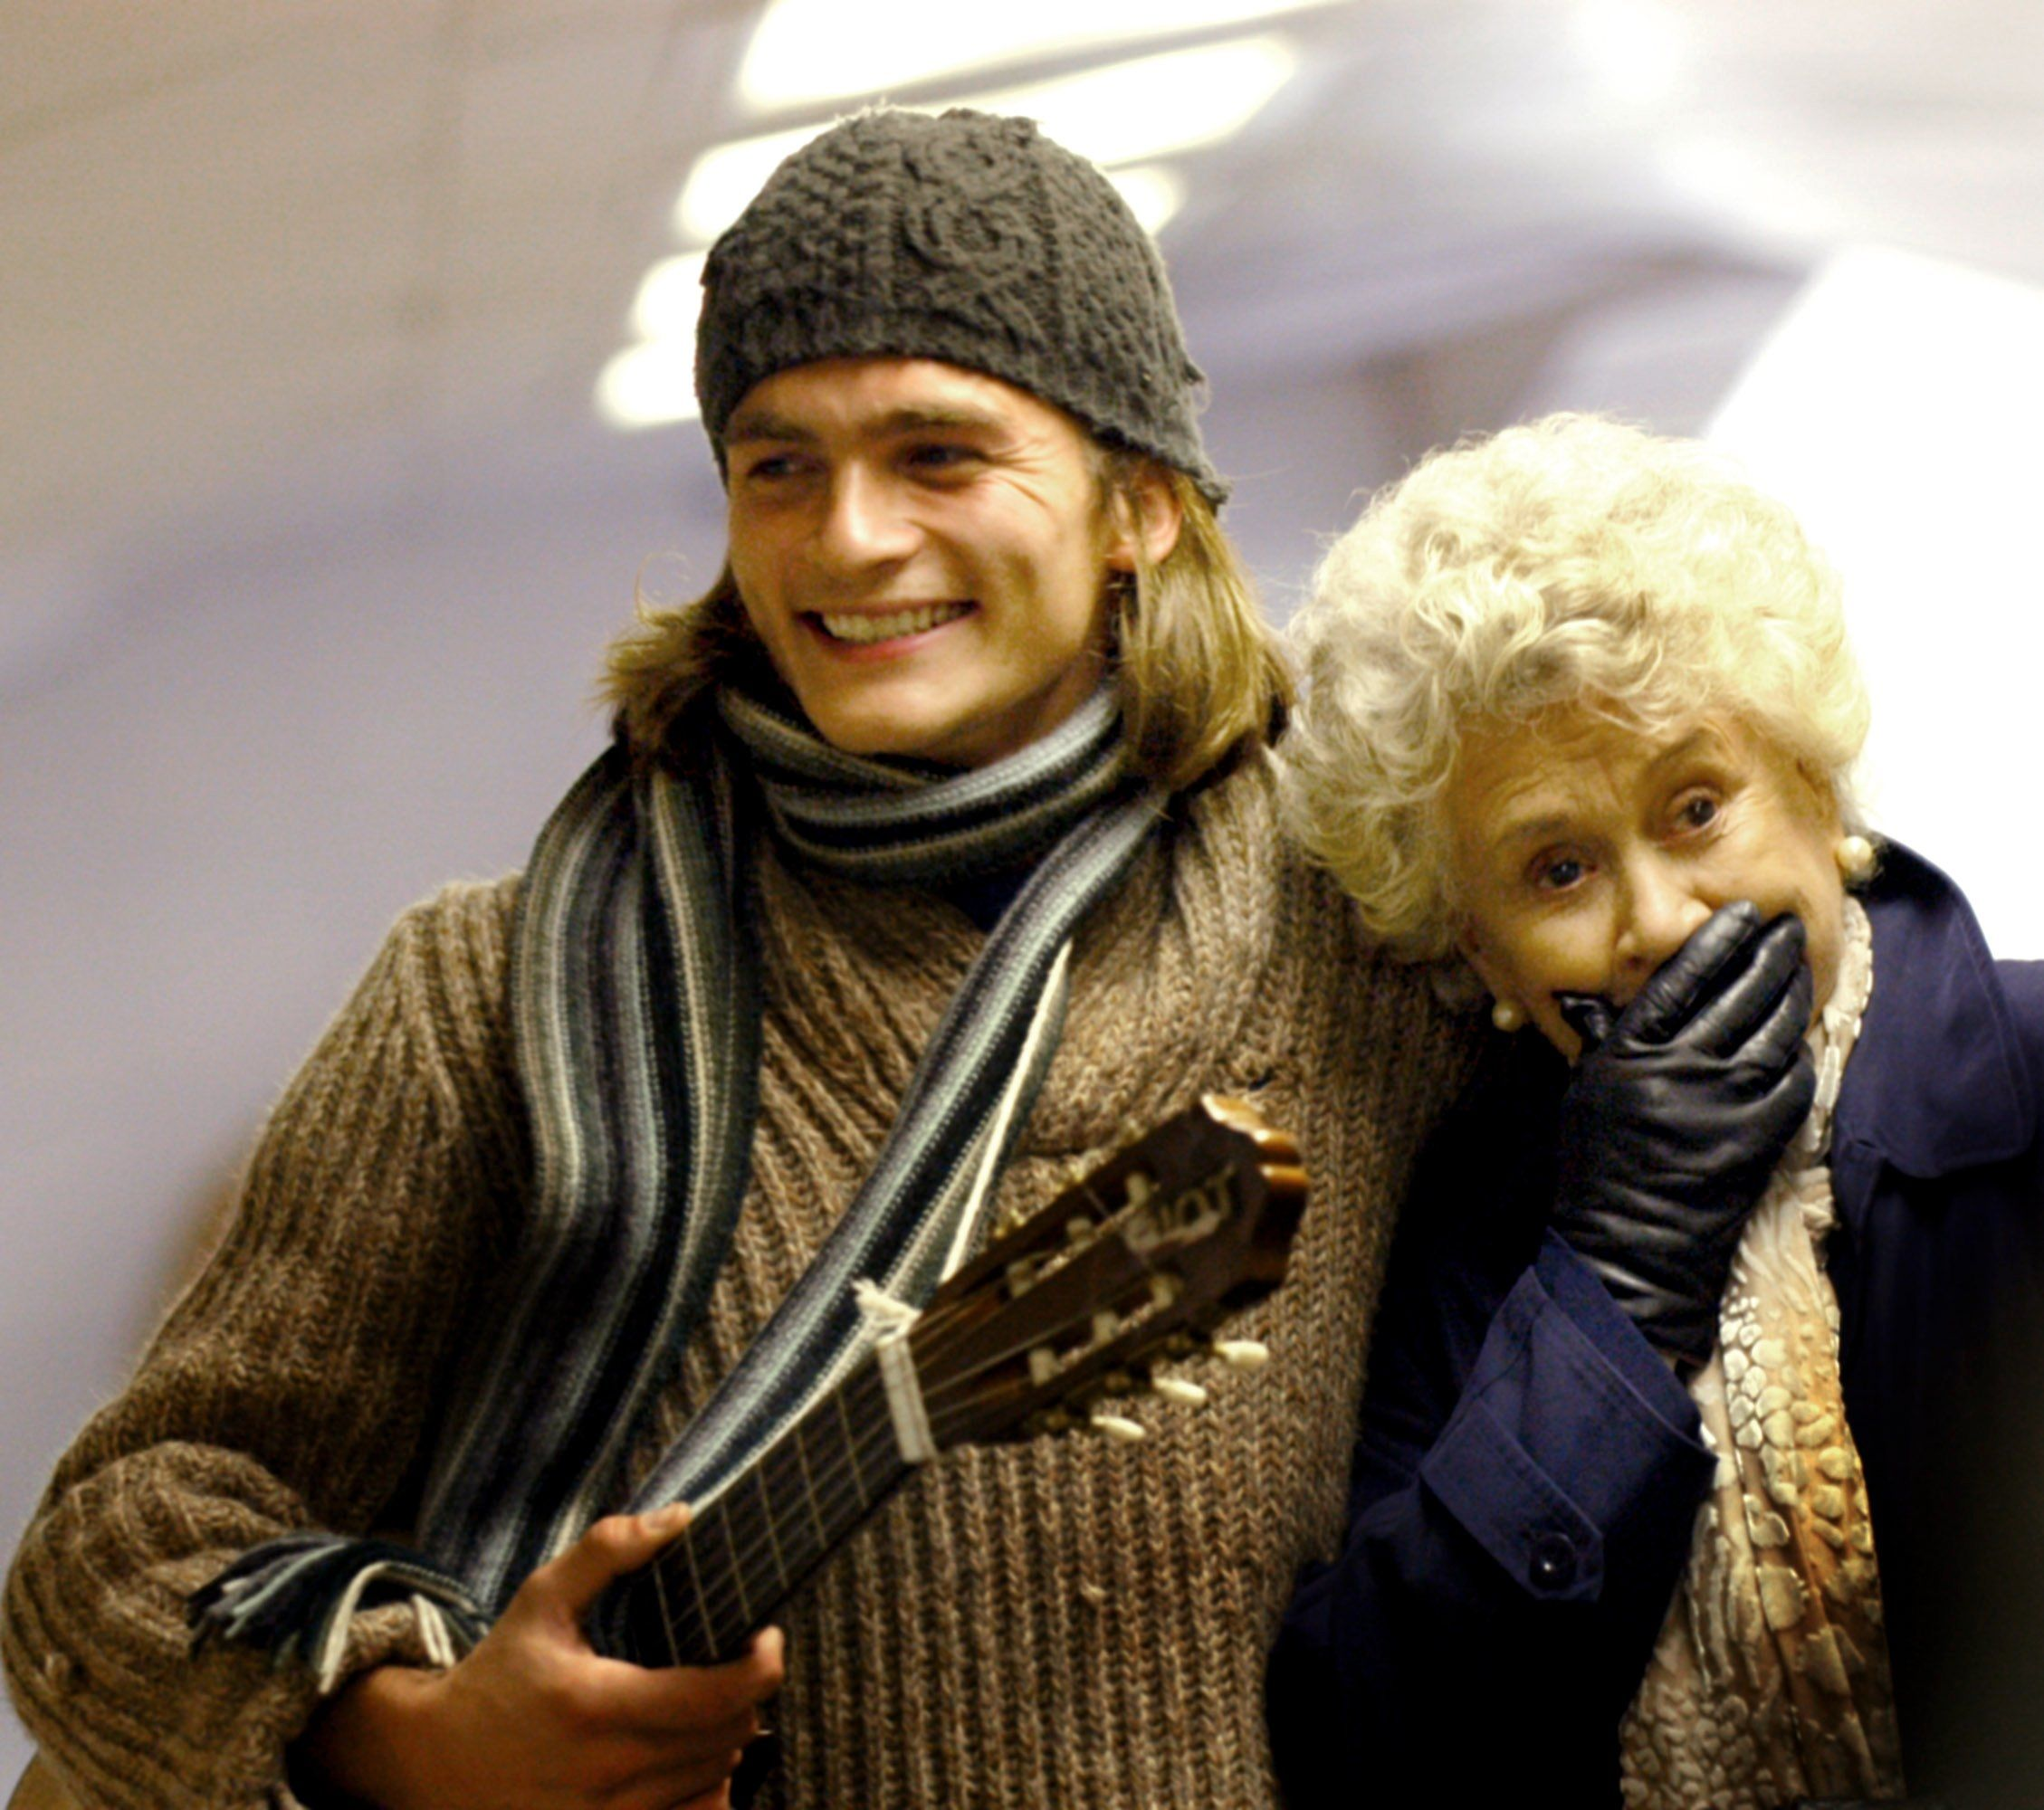 rupert friend and dame joan plowright in quotmrs palfrey at